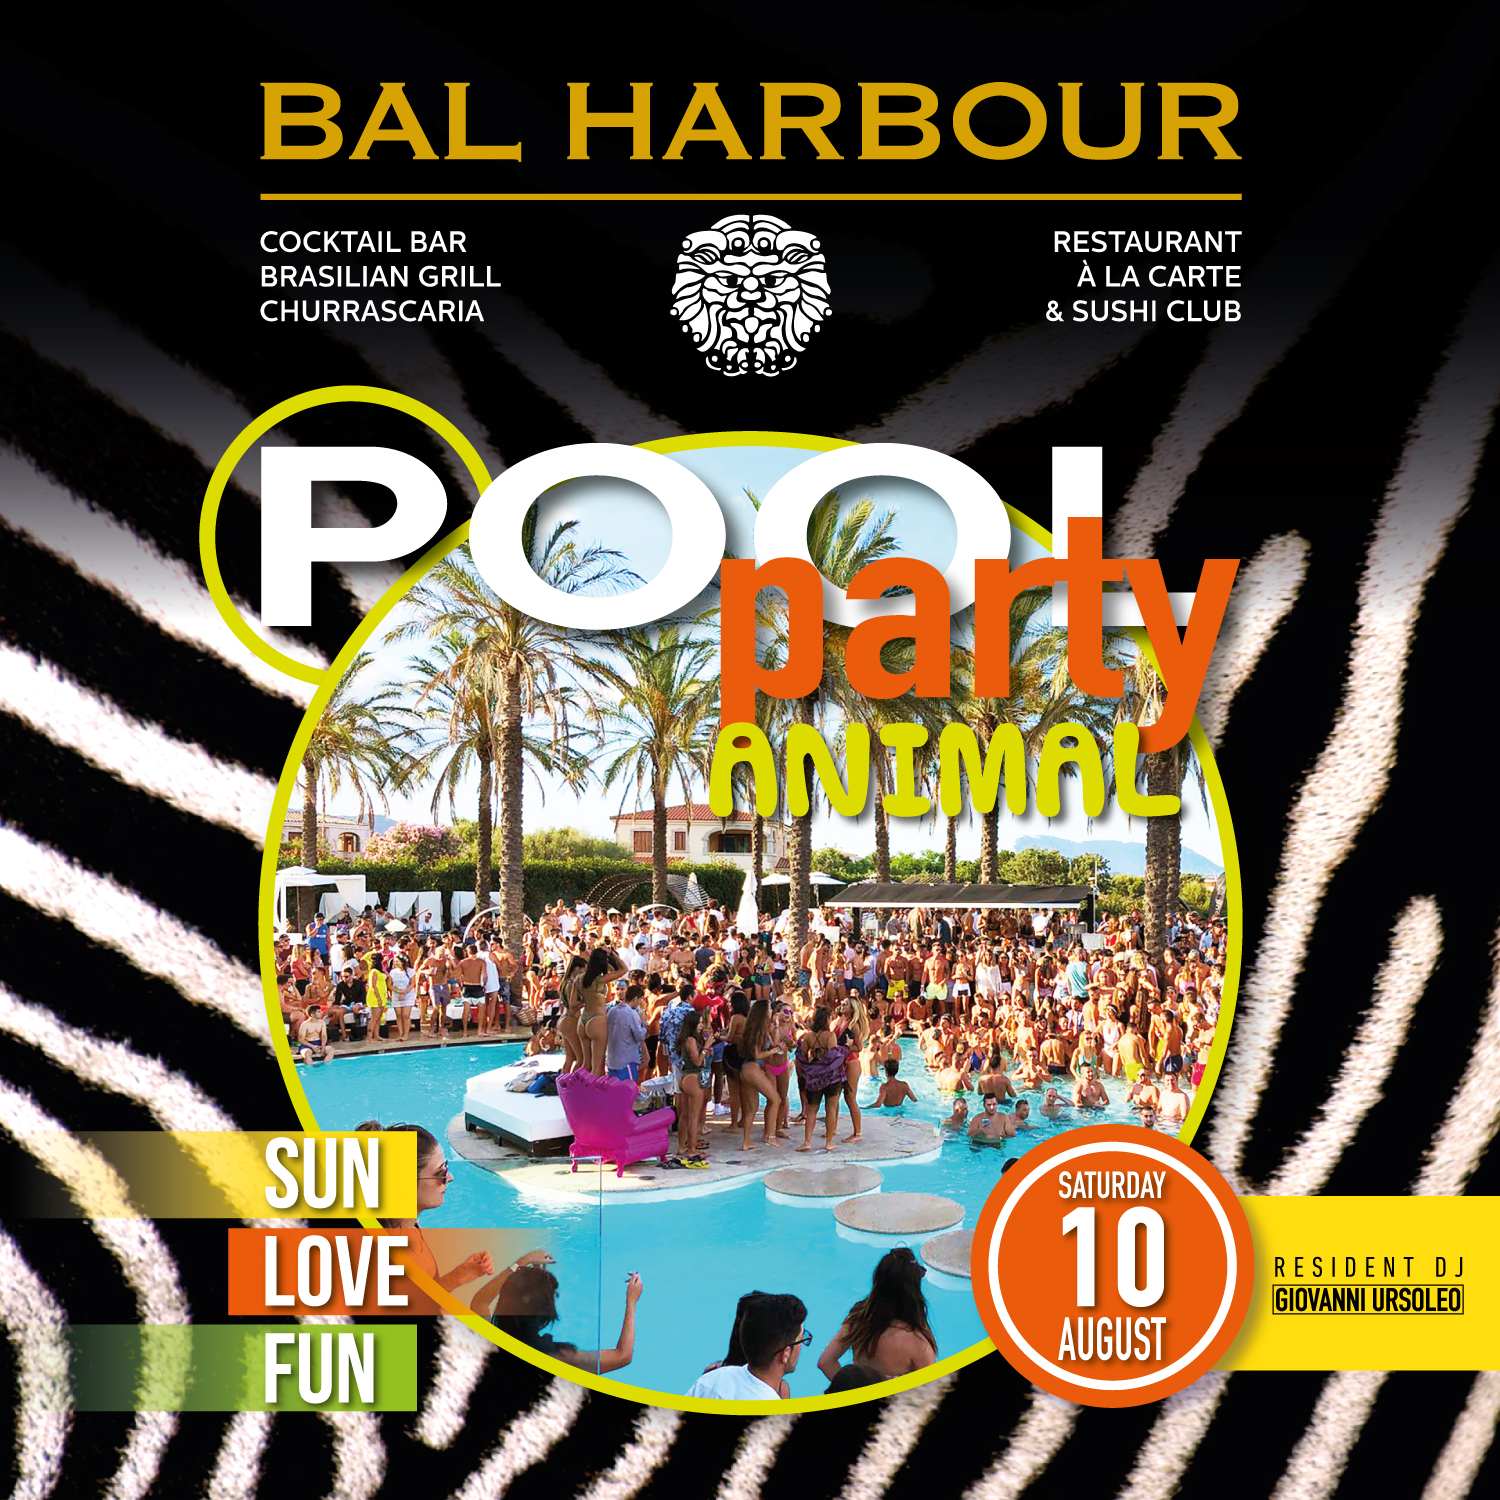 animal pool party bal harbour san teodoro summer sardegna